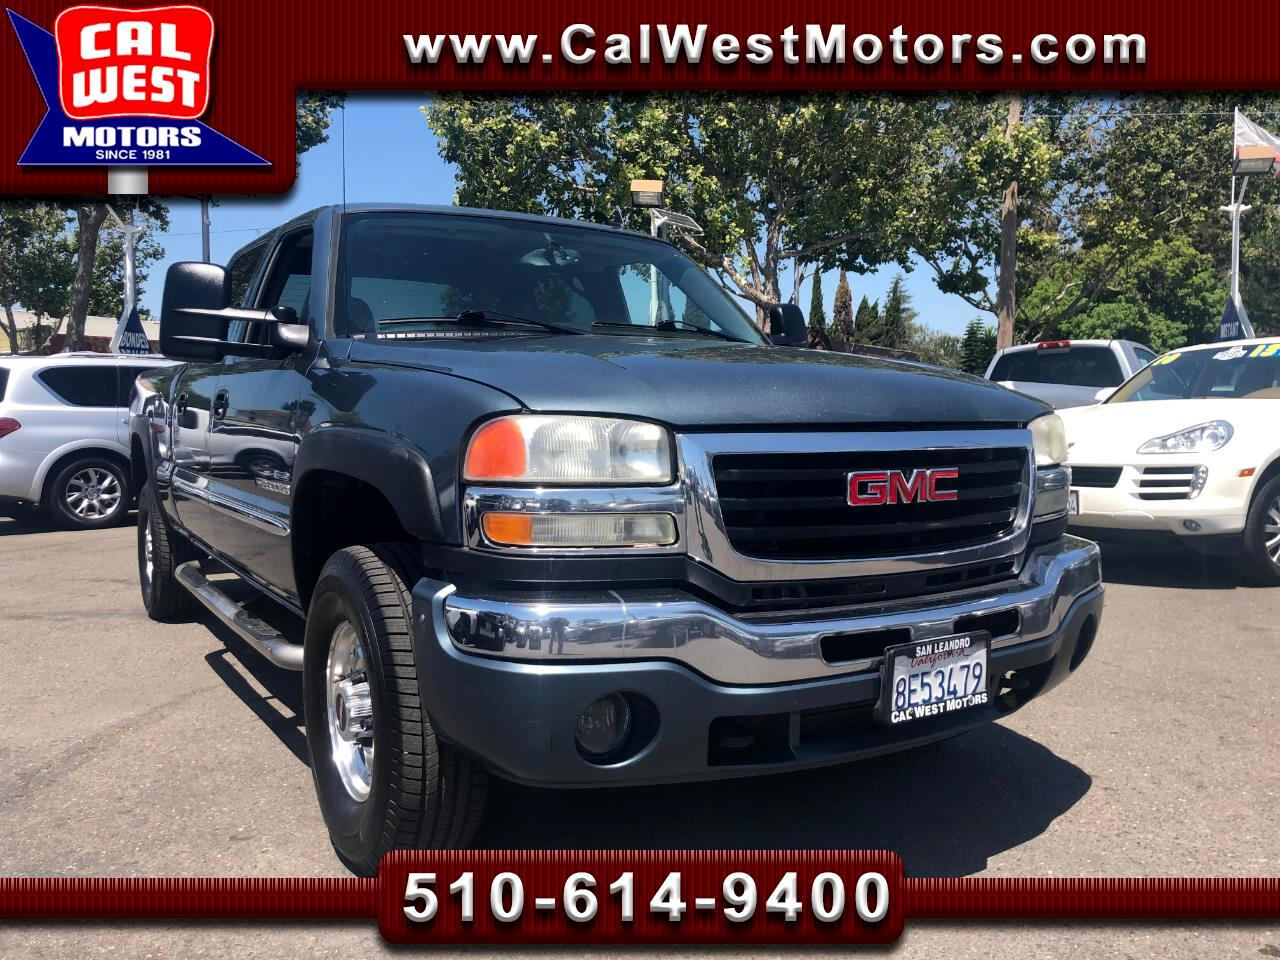 2007 GMC Sierra Classic 2500HD SLE2 Crew Cab 4WD Duramax LBZ 1Owner ExprtMantnce